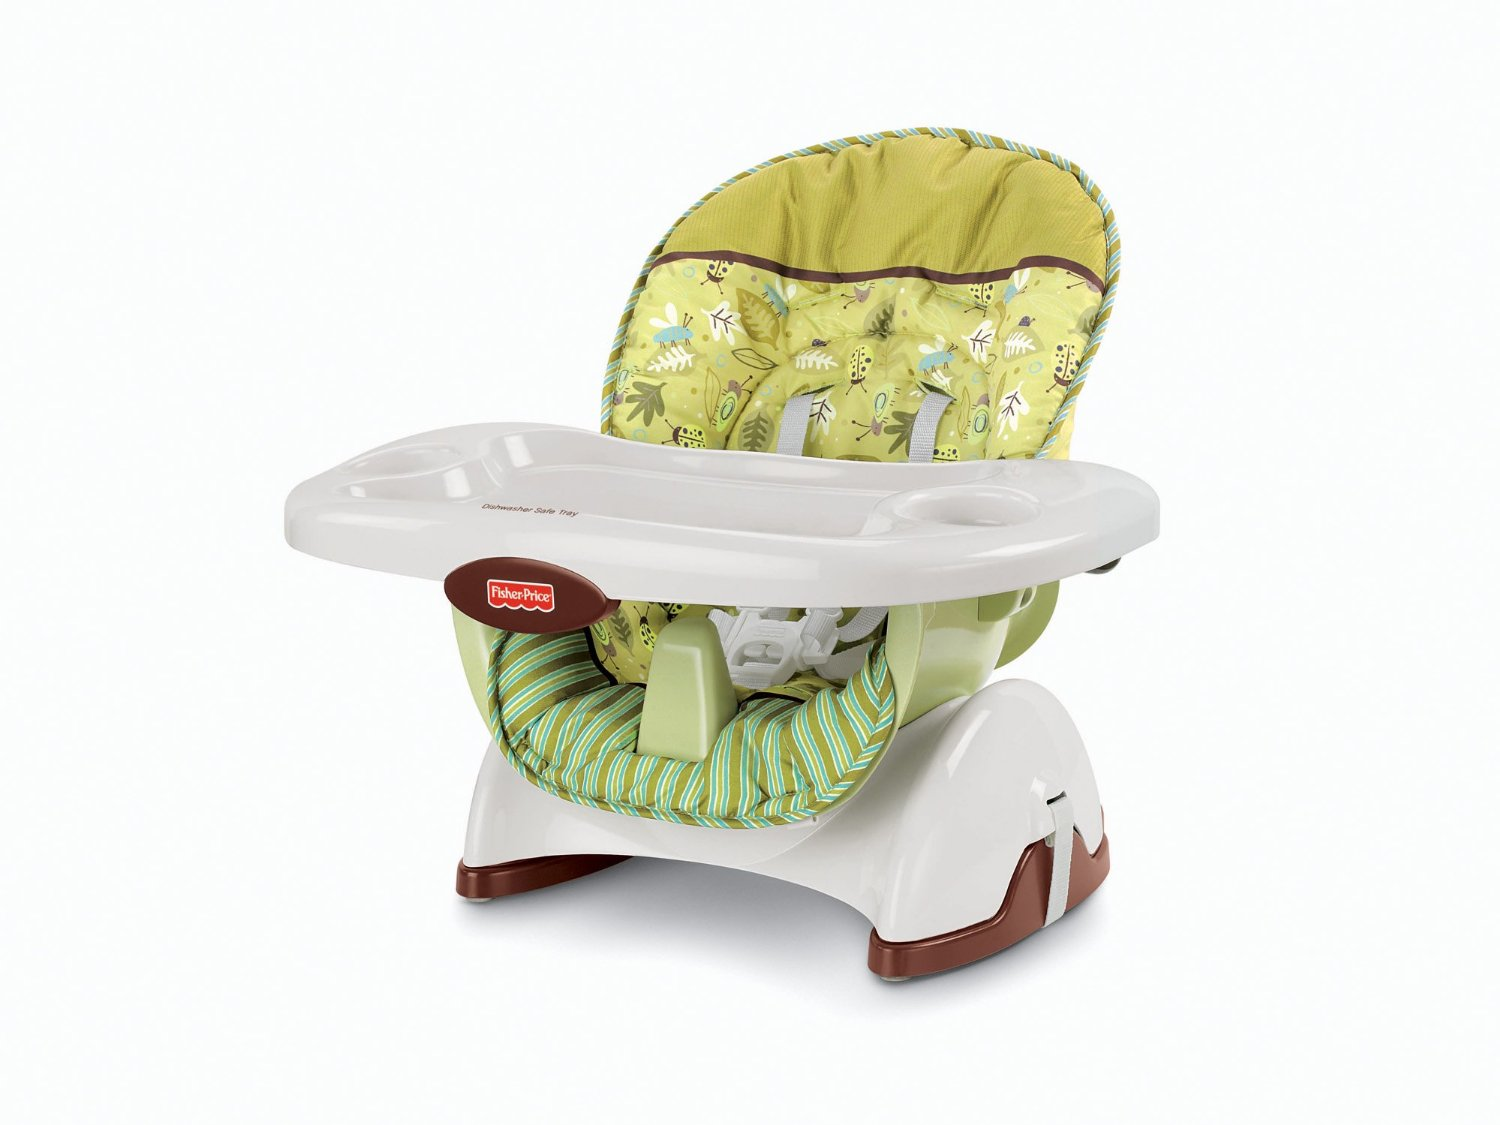 Fisher price high chair recall - 5 Best Fisher Price High Chair Mealtime Has Never Been Easier Tool Box